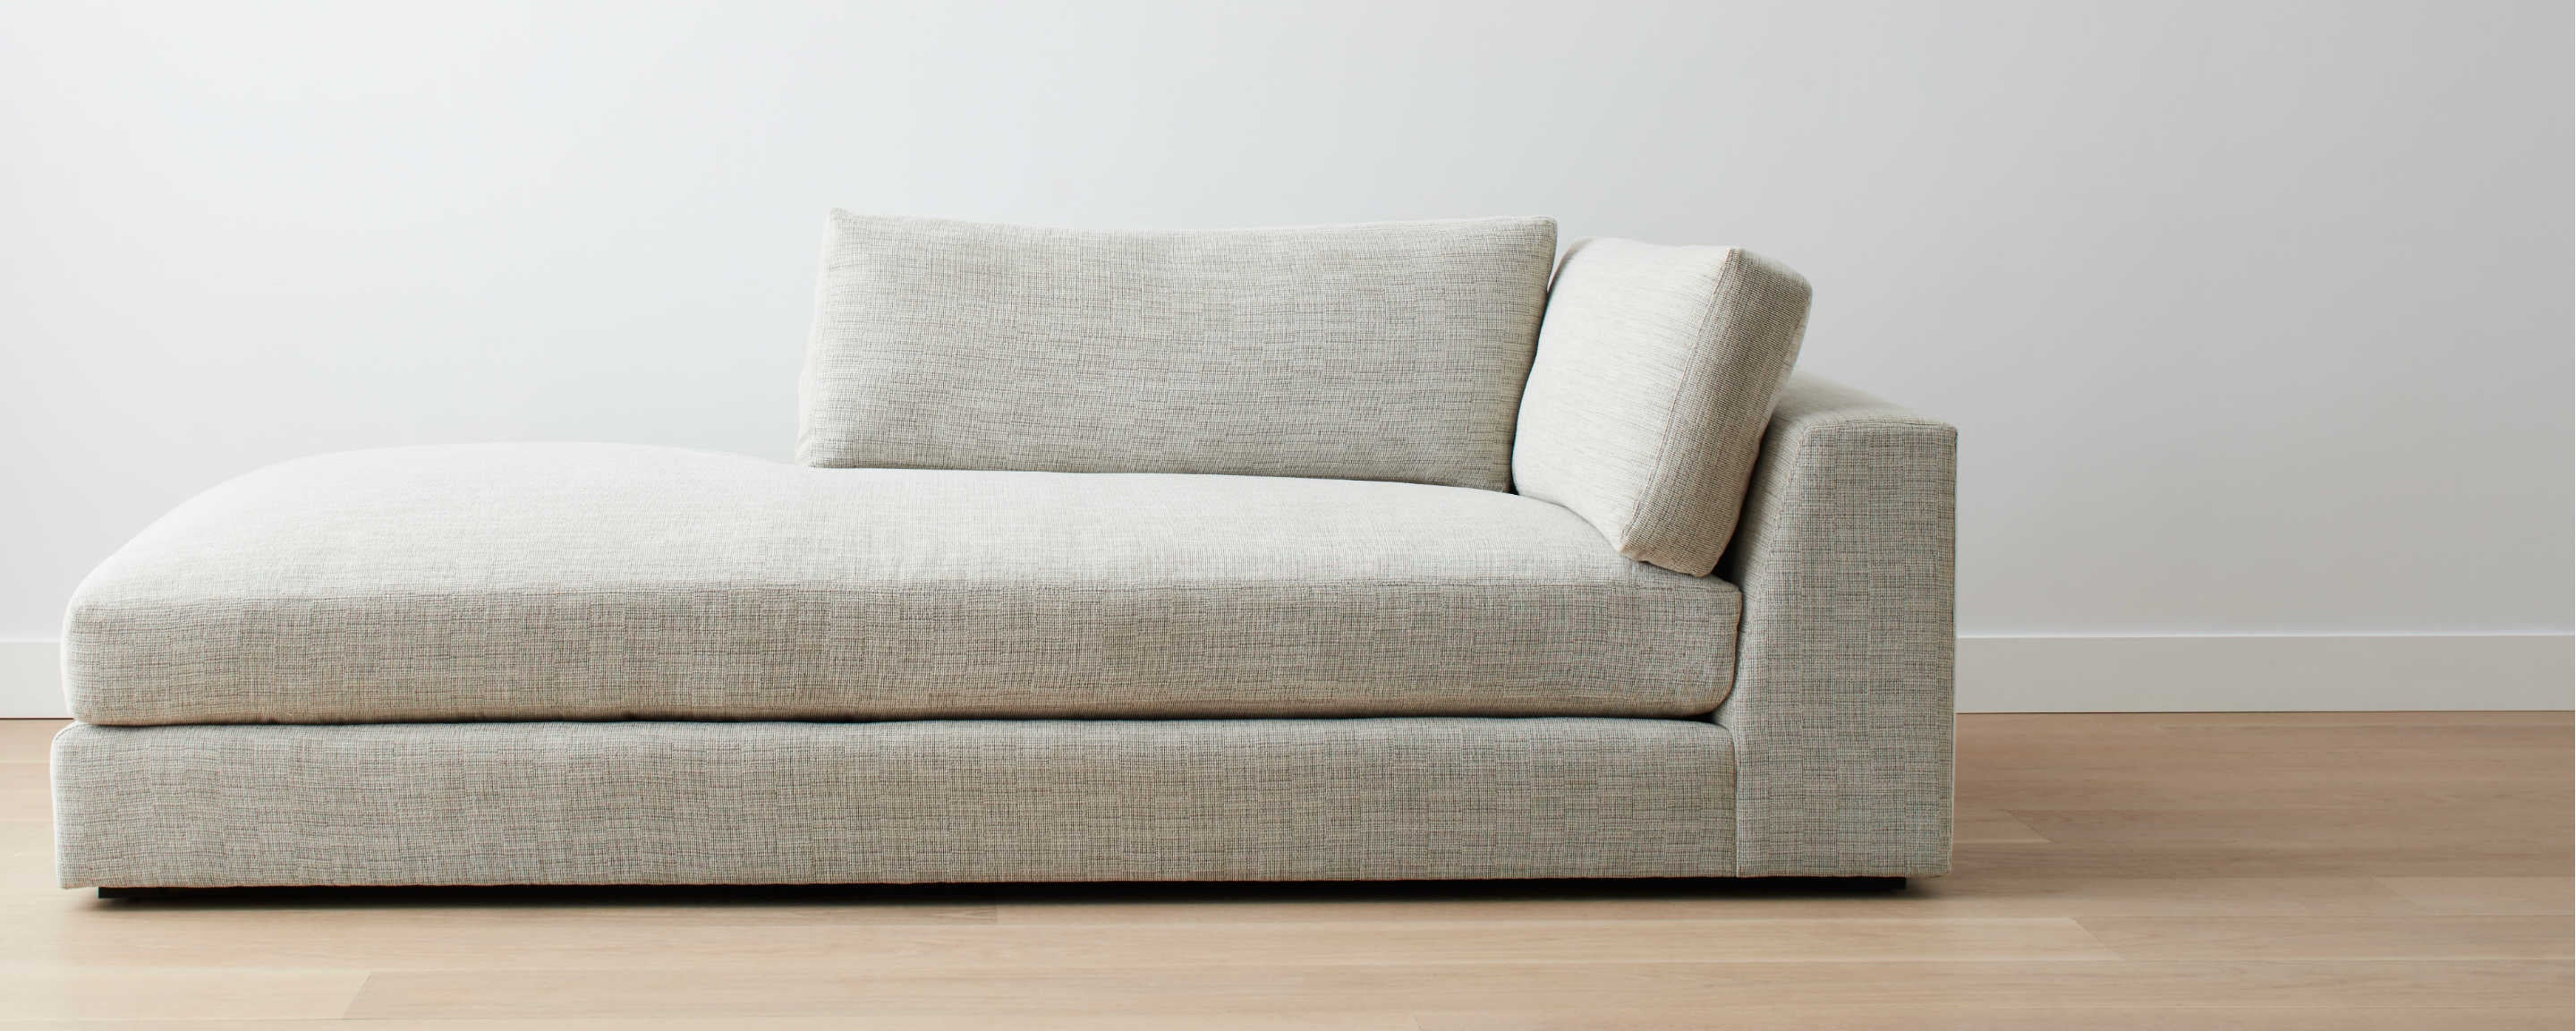 the homenature lazy point sectional